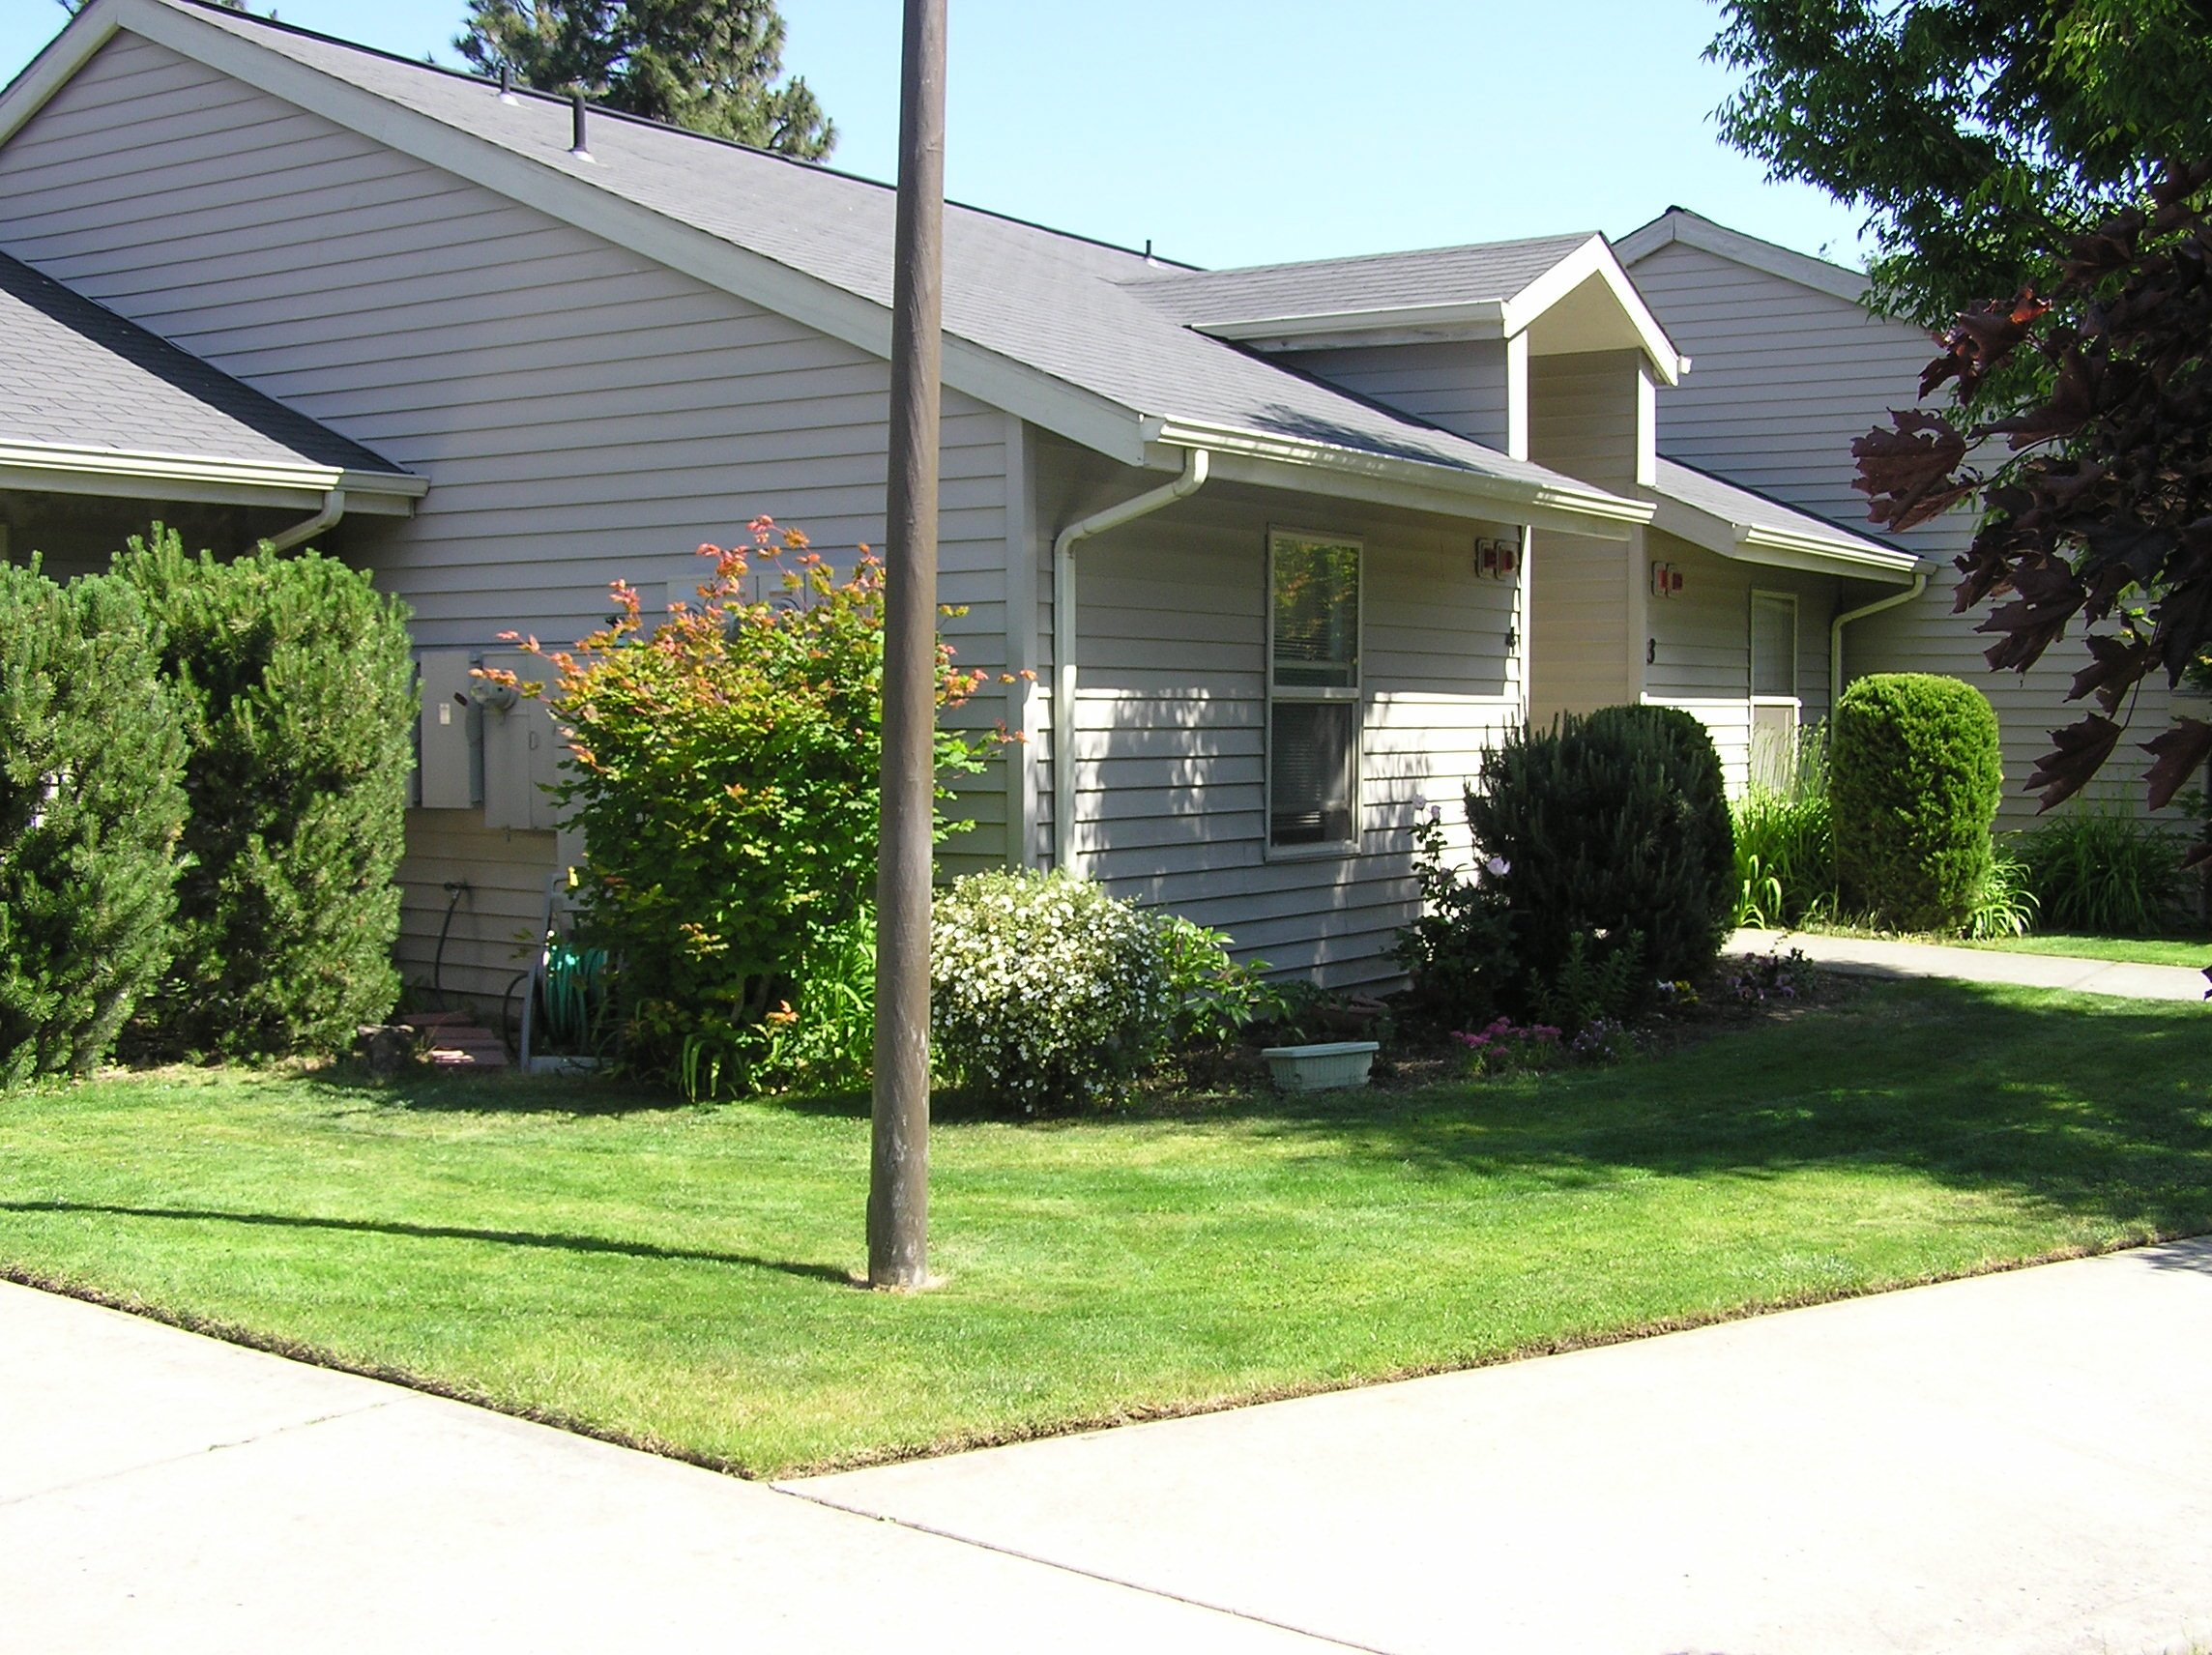 Superb Mosier Creek Terrace Mid Columbia Housing Authority Home Interior And Landscaping Oversignezvosmurscom